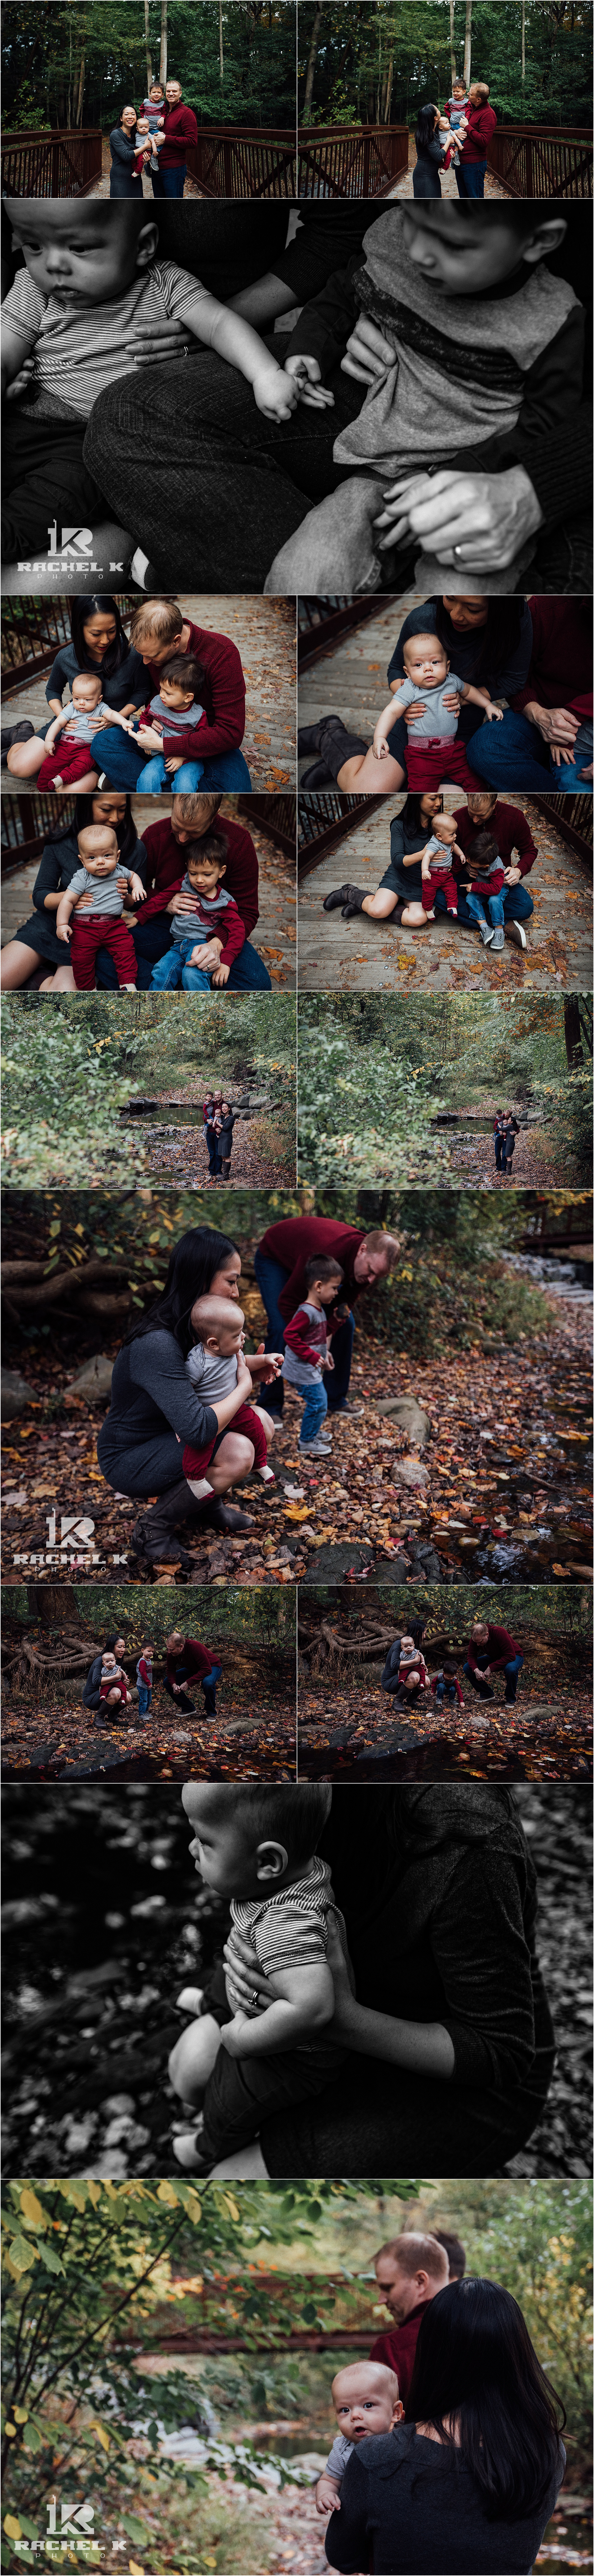 Fairfax lifestyle family session at Green Springs Gardens by Rachel K Photo